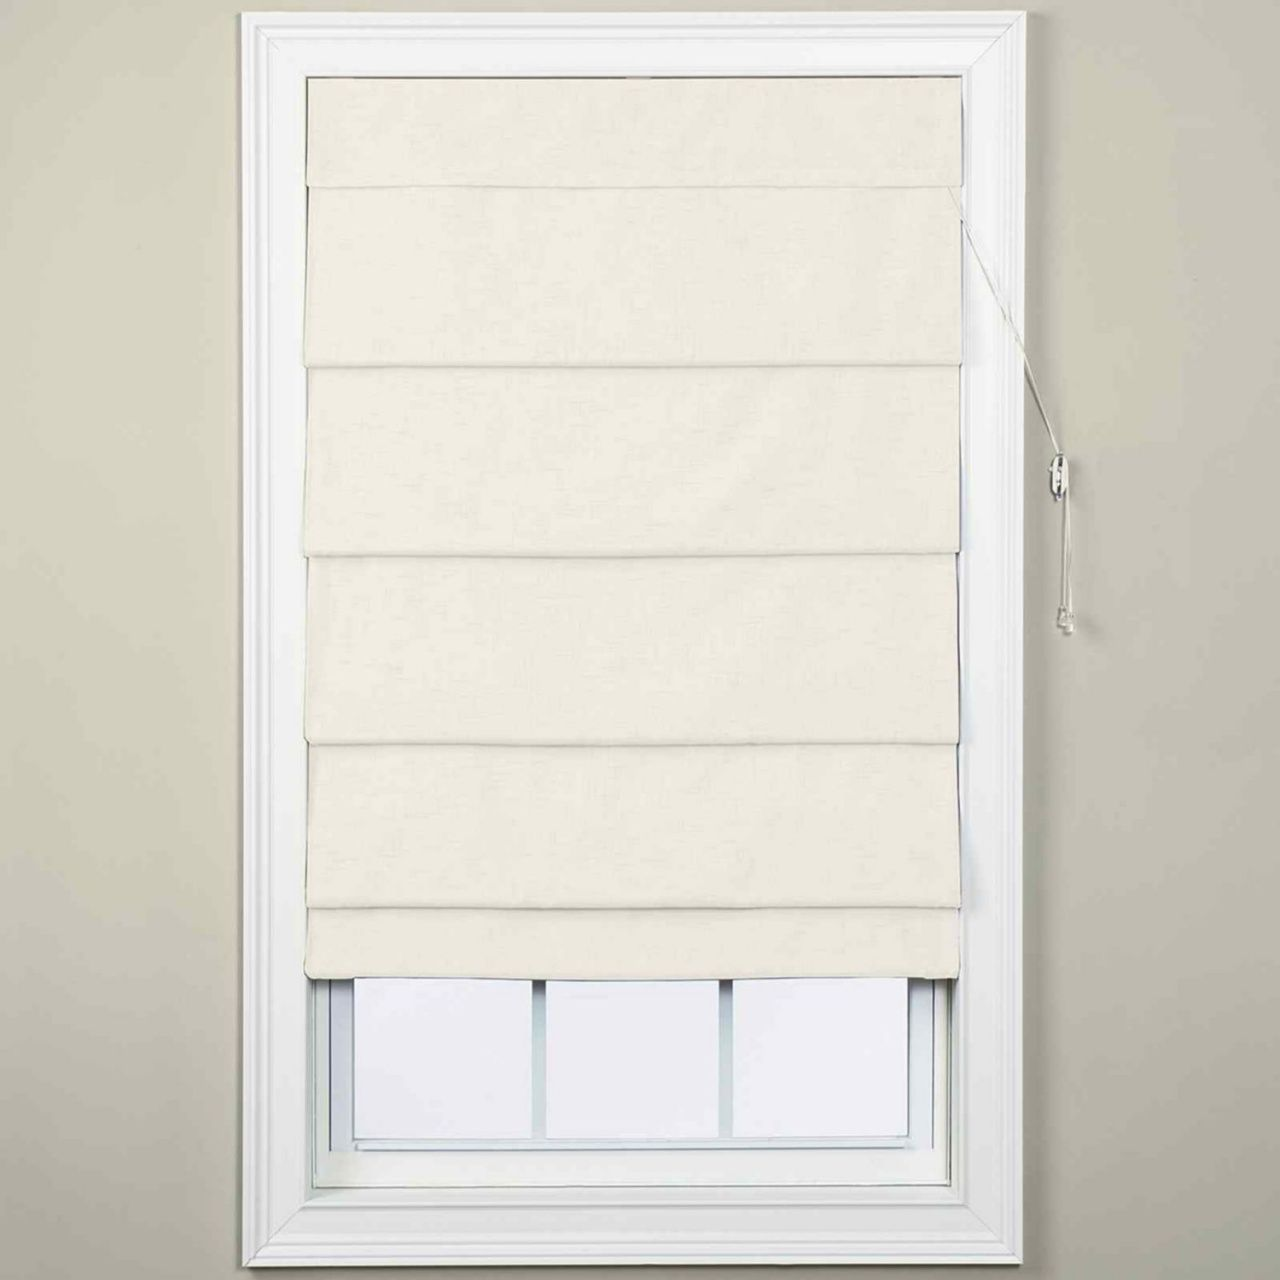 How To Install Mainstay Cordless Mini Blinds In 2020 Vinyl Mini Blinds Mini Blinds Buy Blinds